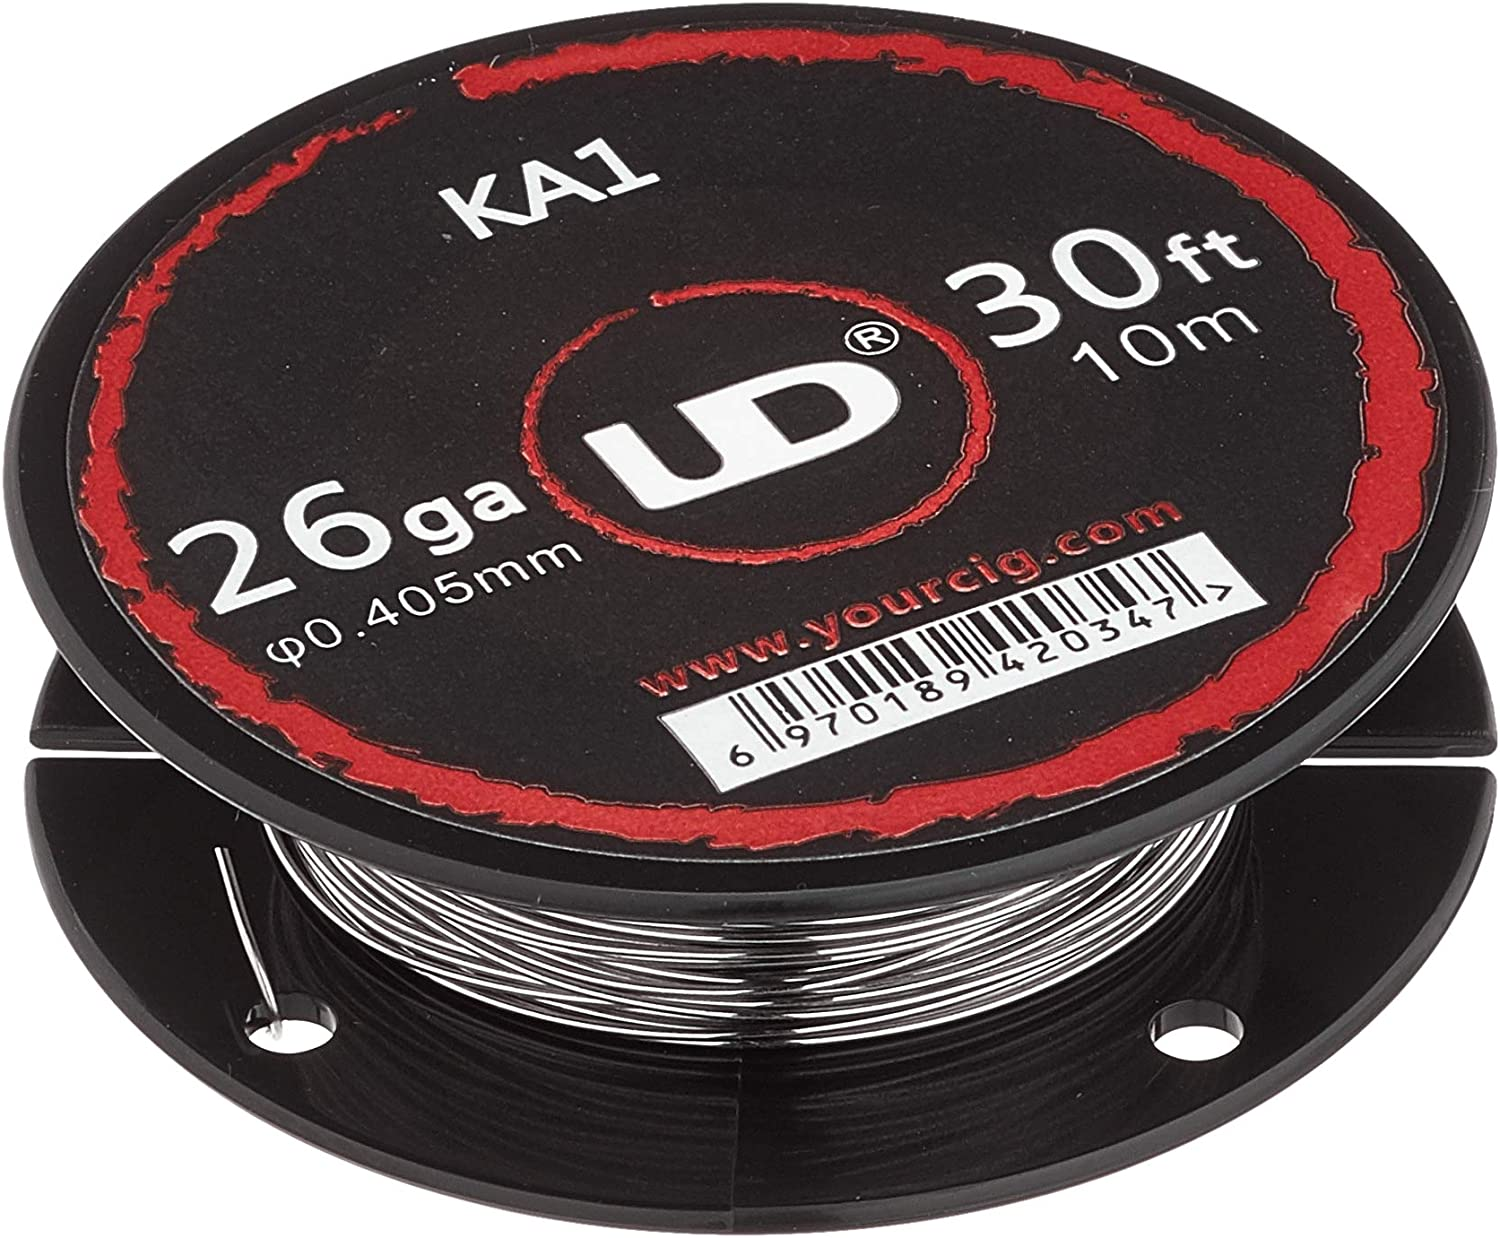 10 metre spool UD Youde wire 0.30 mm Kanthal A1-28 AWG